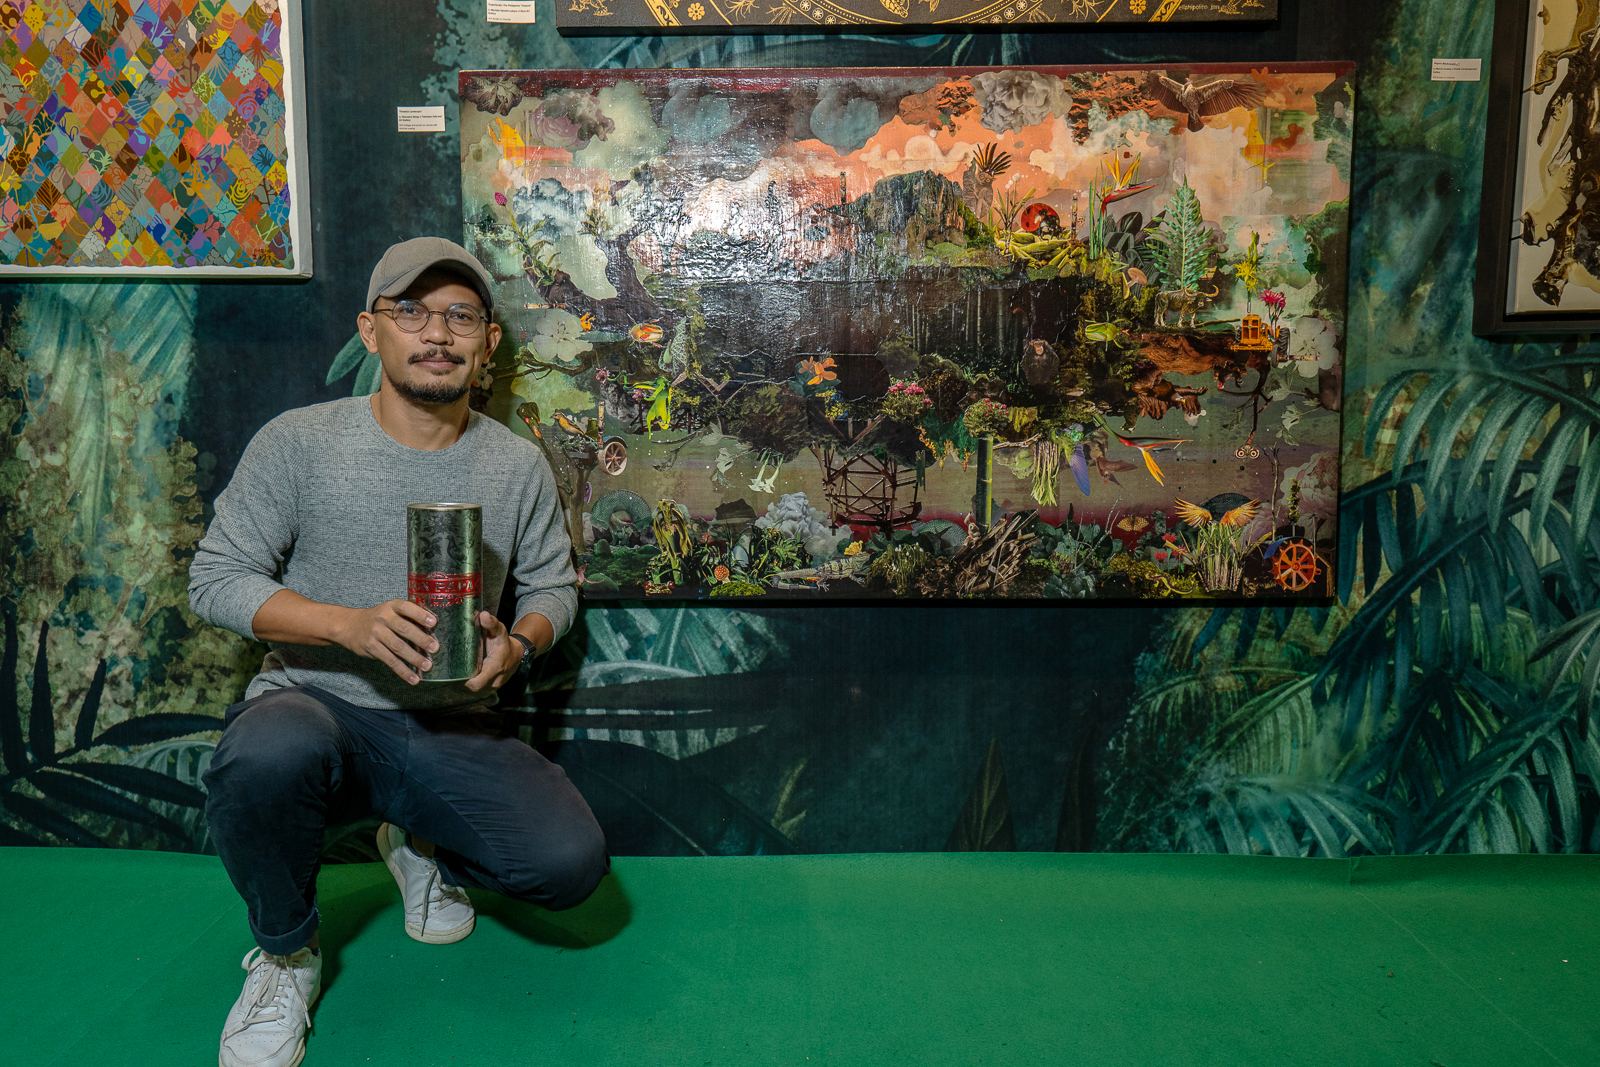 Abing's 'timeless Landscape' Wins Don Papa Art Grand Prize photo